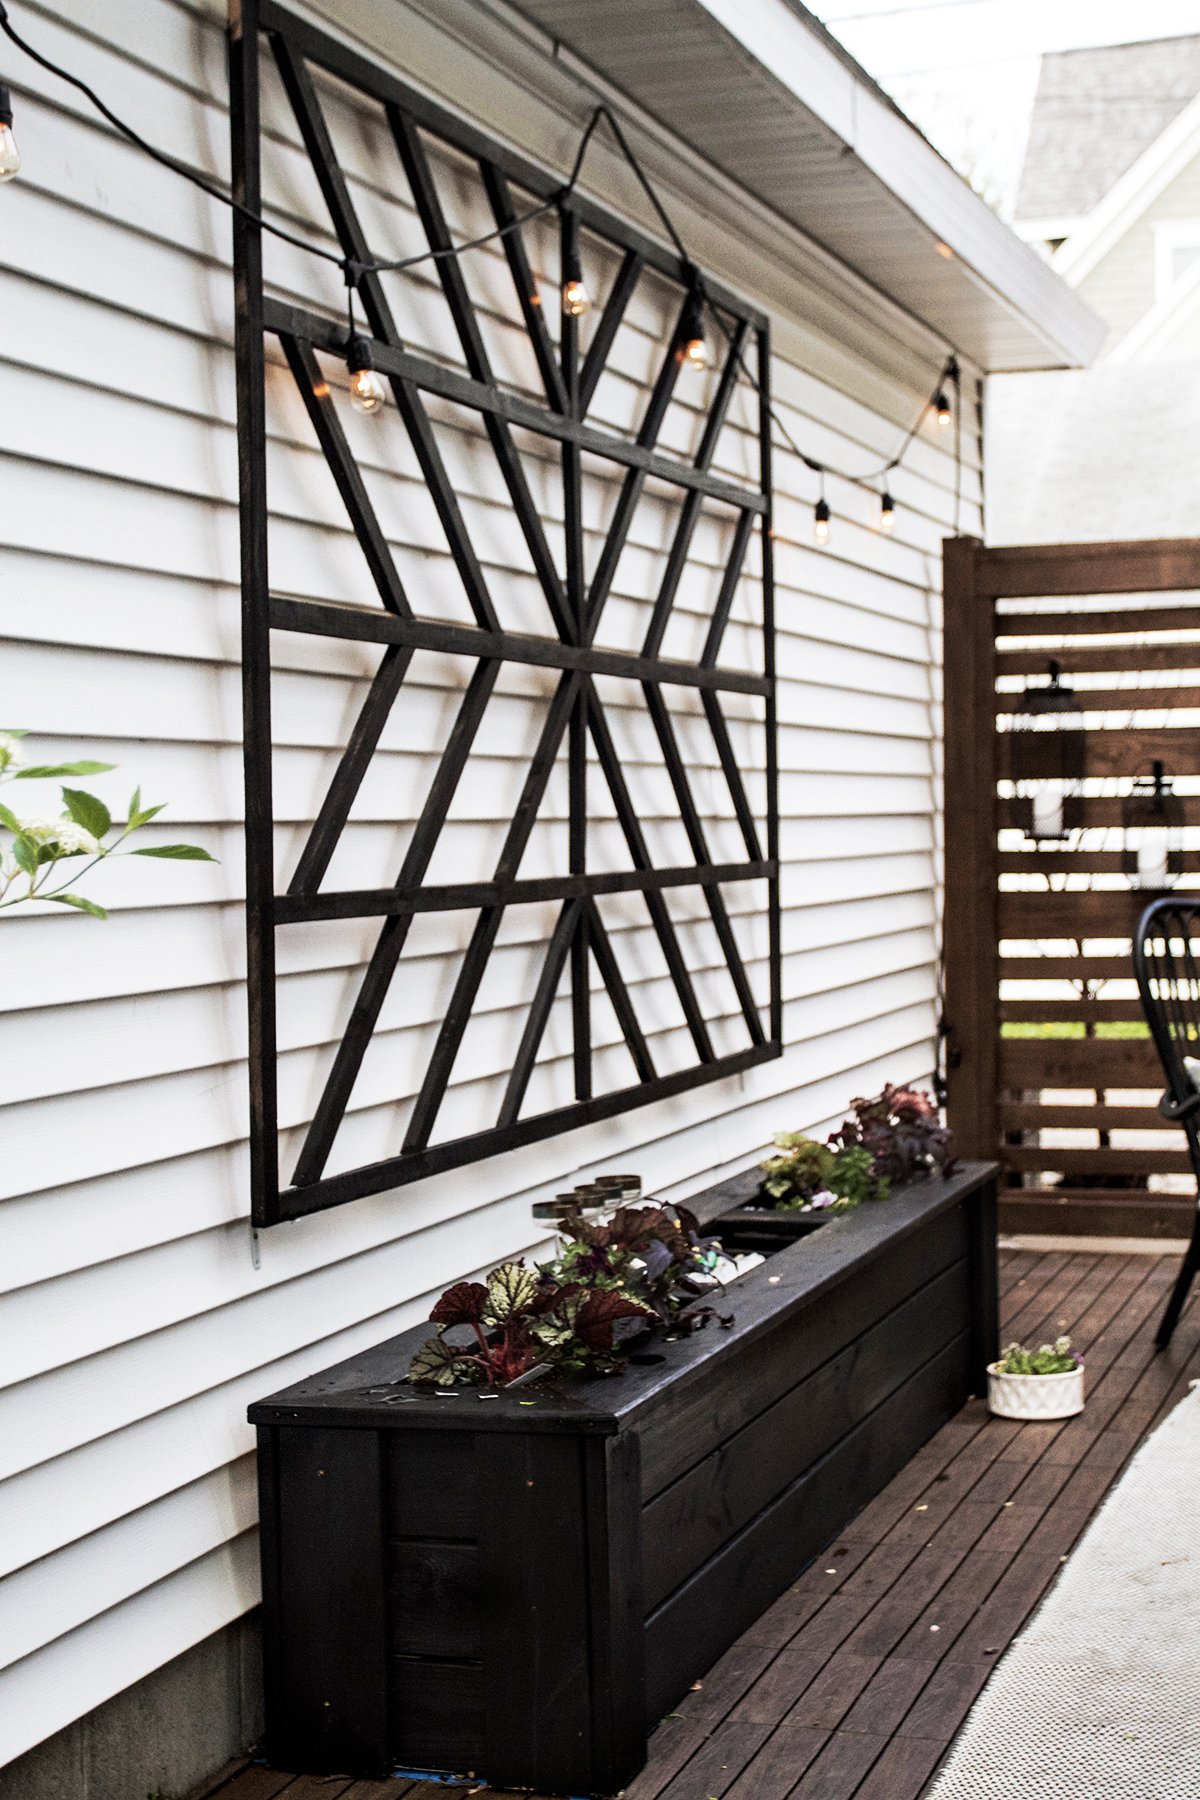 Scandinavian Inspired Patio Transformation with New Tech Wood tiles